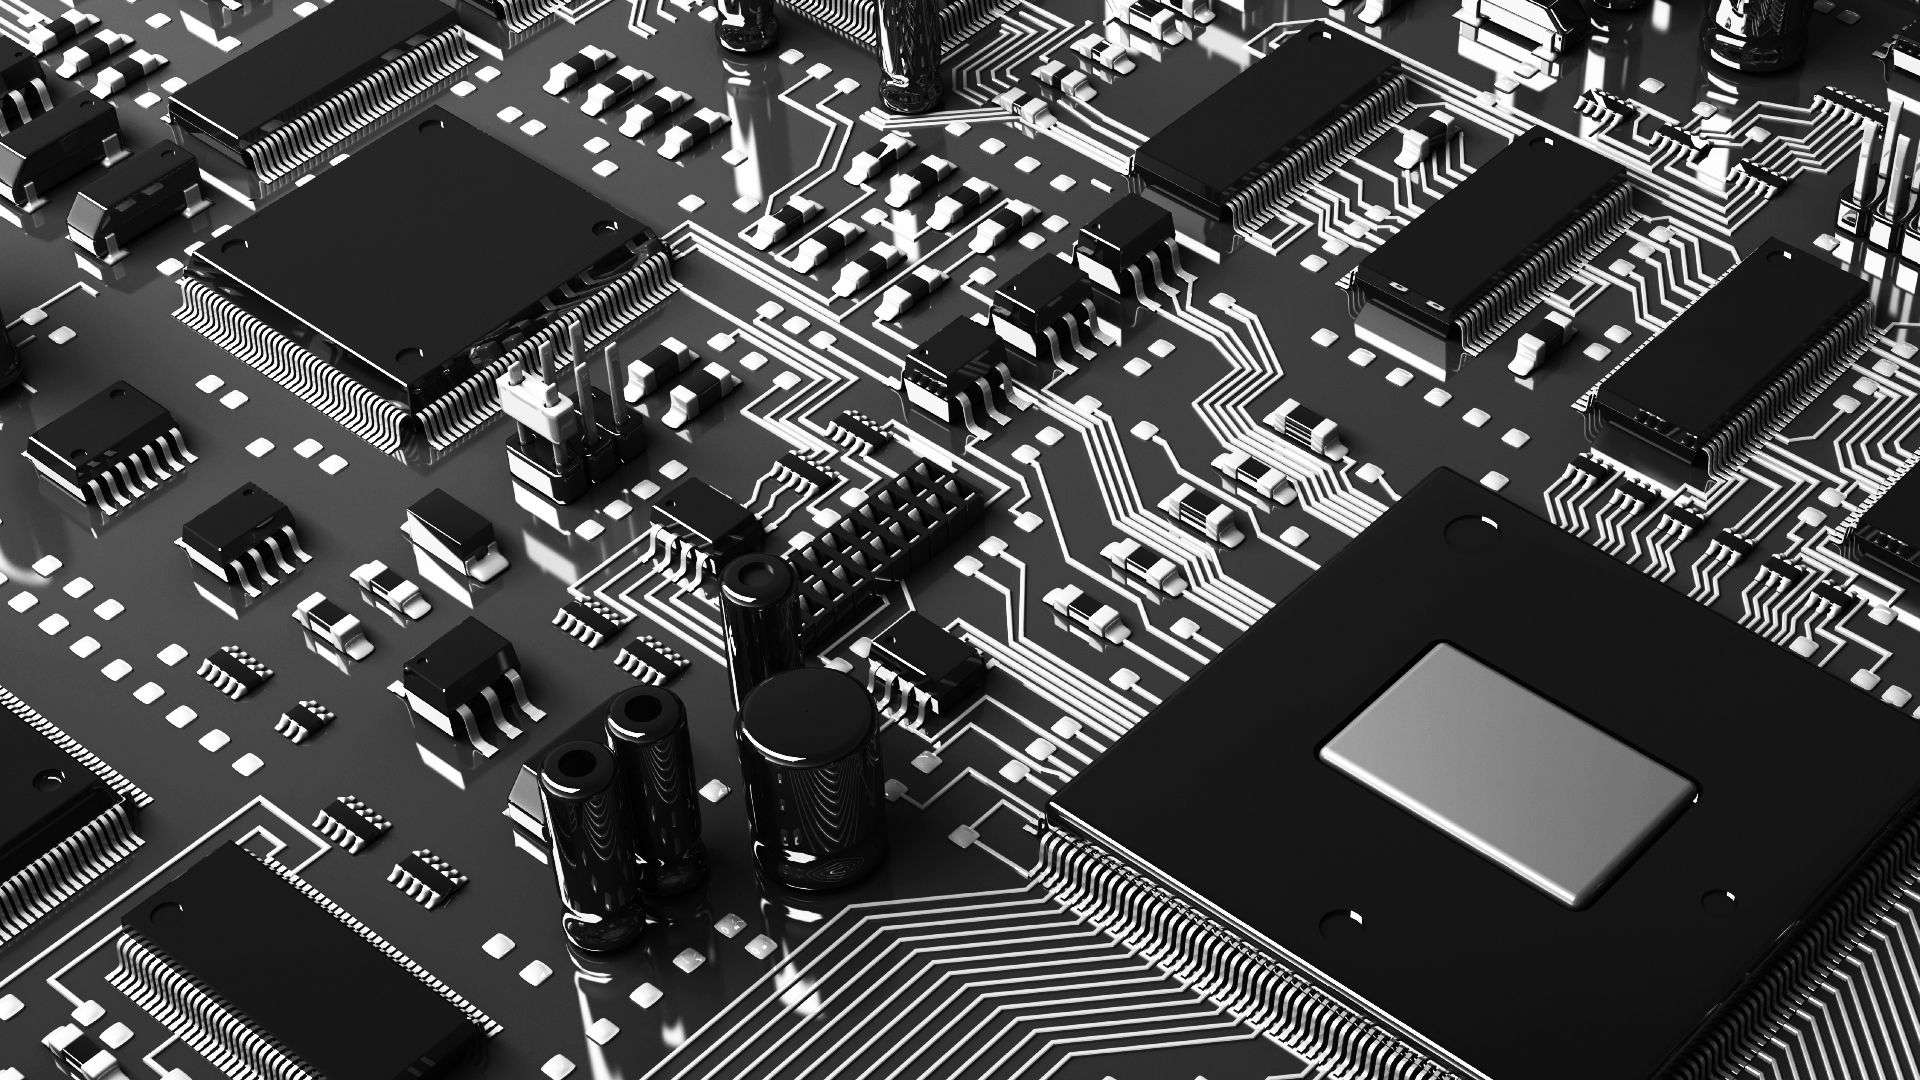 Free Download Circuit Board Wallpapers 1920x1080 For Your